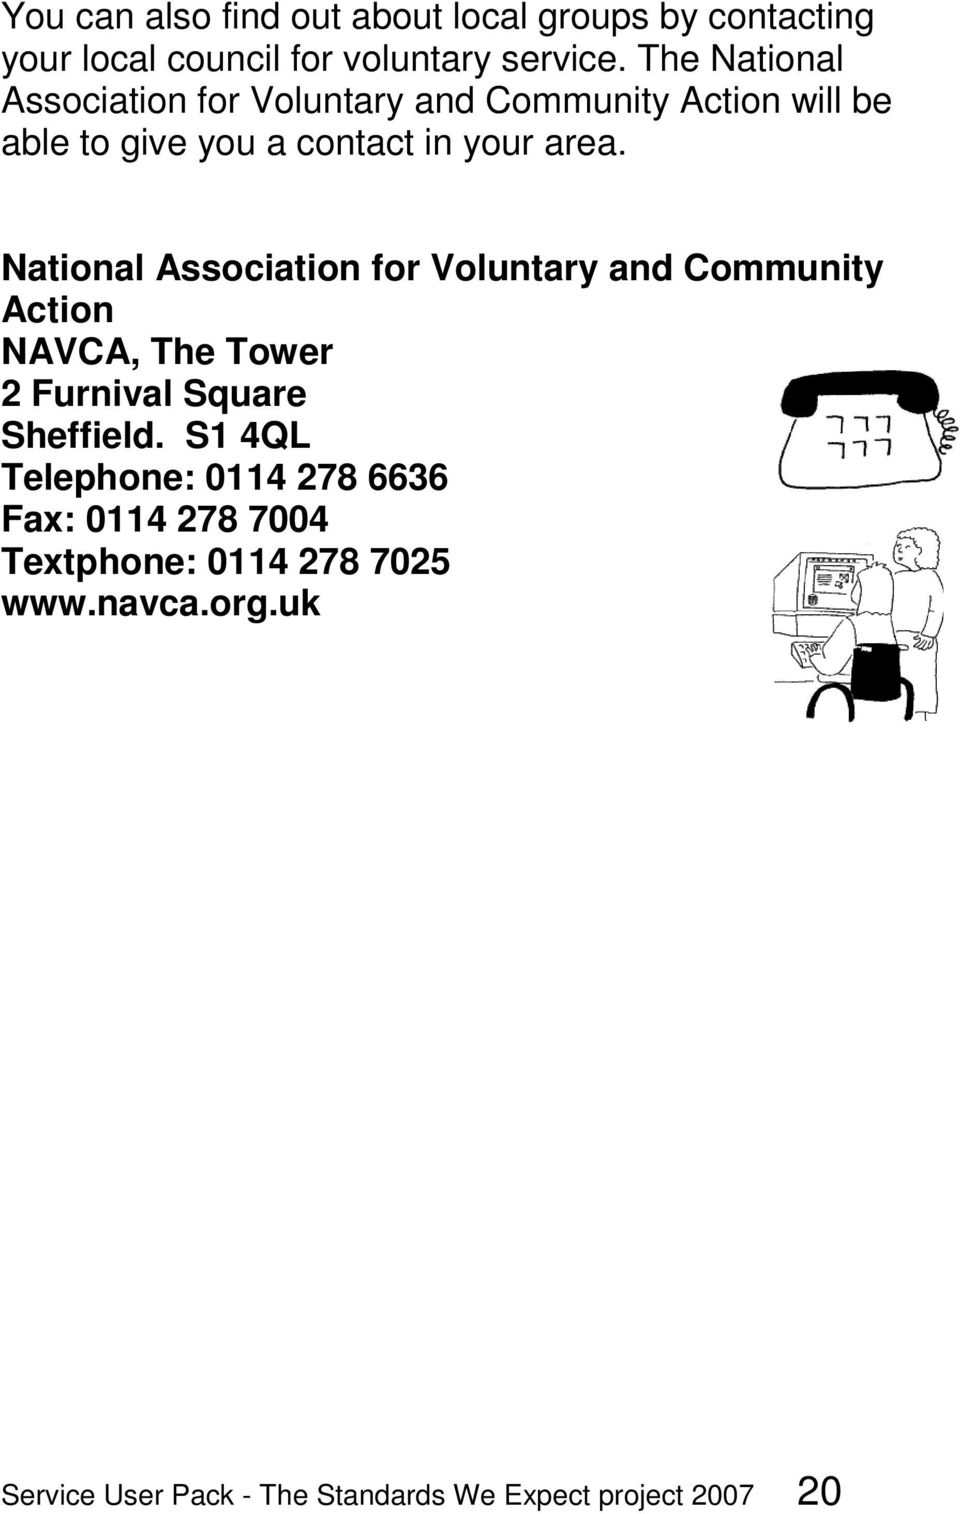 National Association for Voluntary and Community Action NAVCA, The Tower 2 Furnival Square Sheffield.